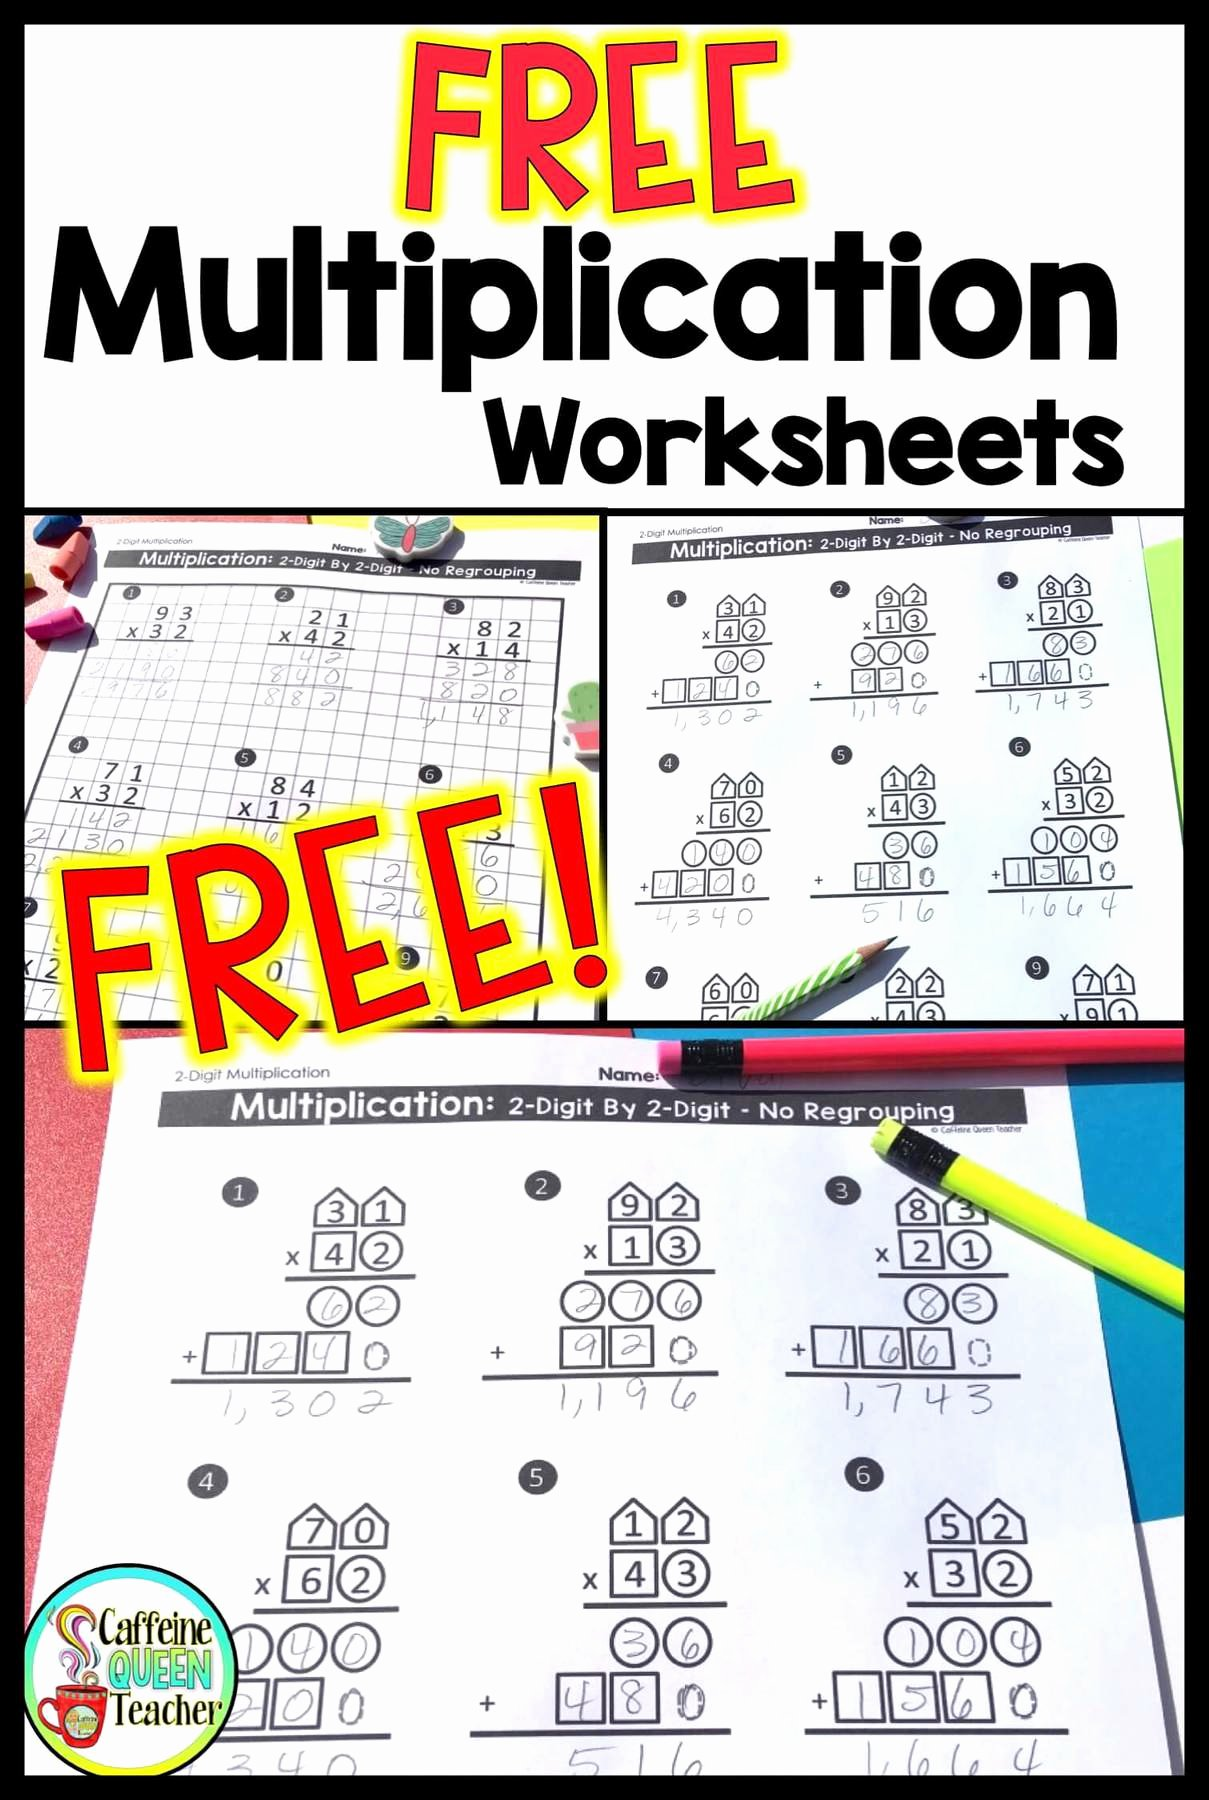 3 Digit by 2 Digit Multiplication Worksheets with Grids New 2 Digit Multiplication Worksheets Differentiated Caffeine